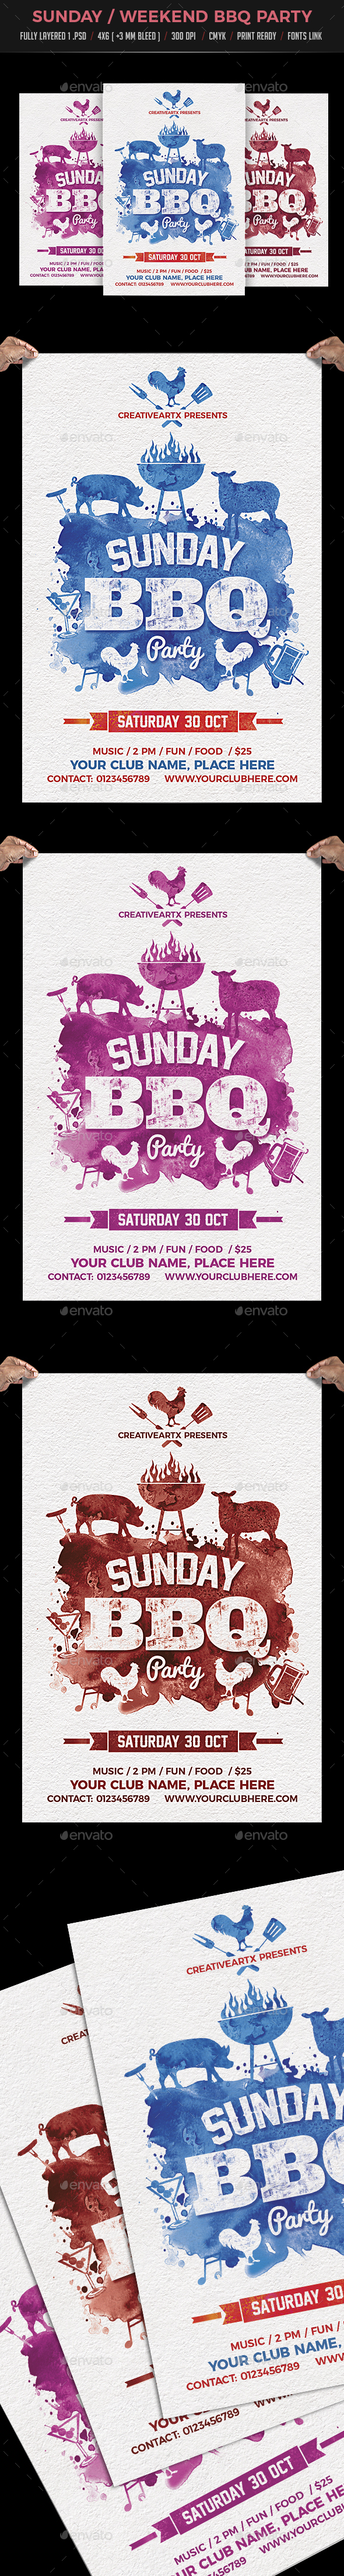 Sunday Weekend BBQ Flyer - Clubs & Parties Events